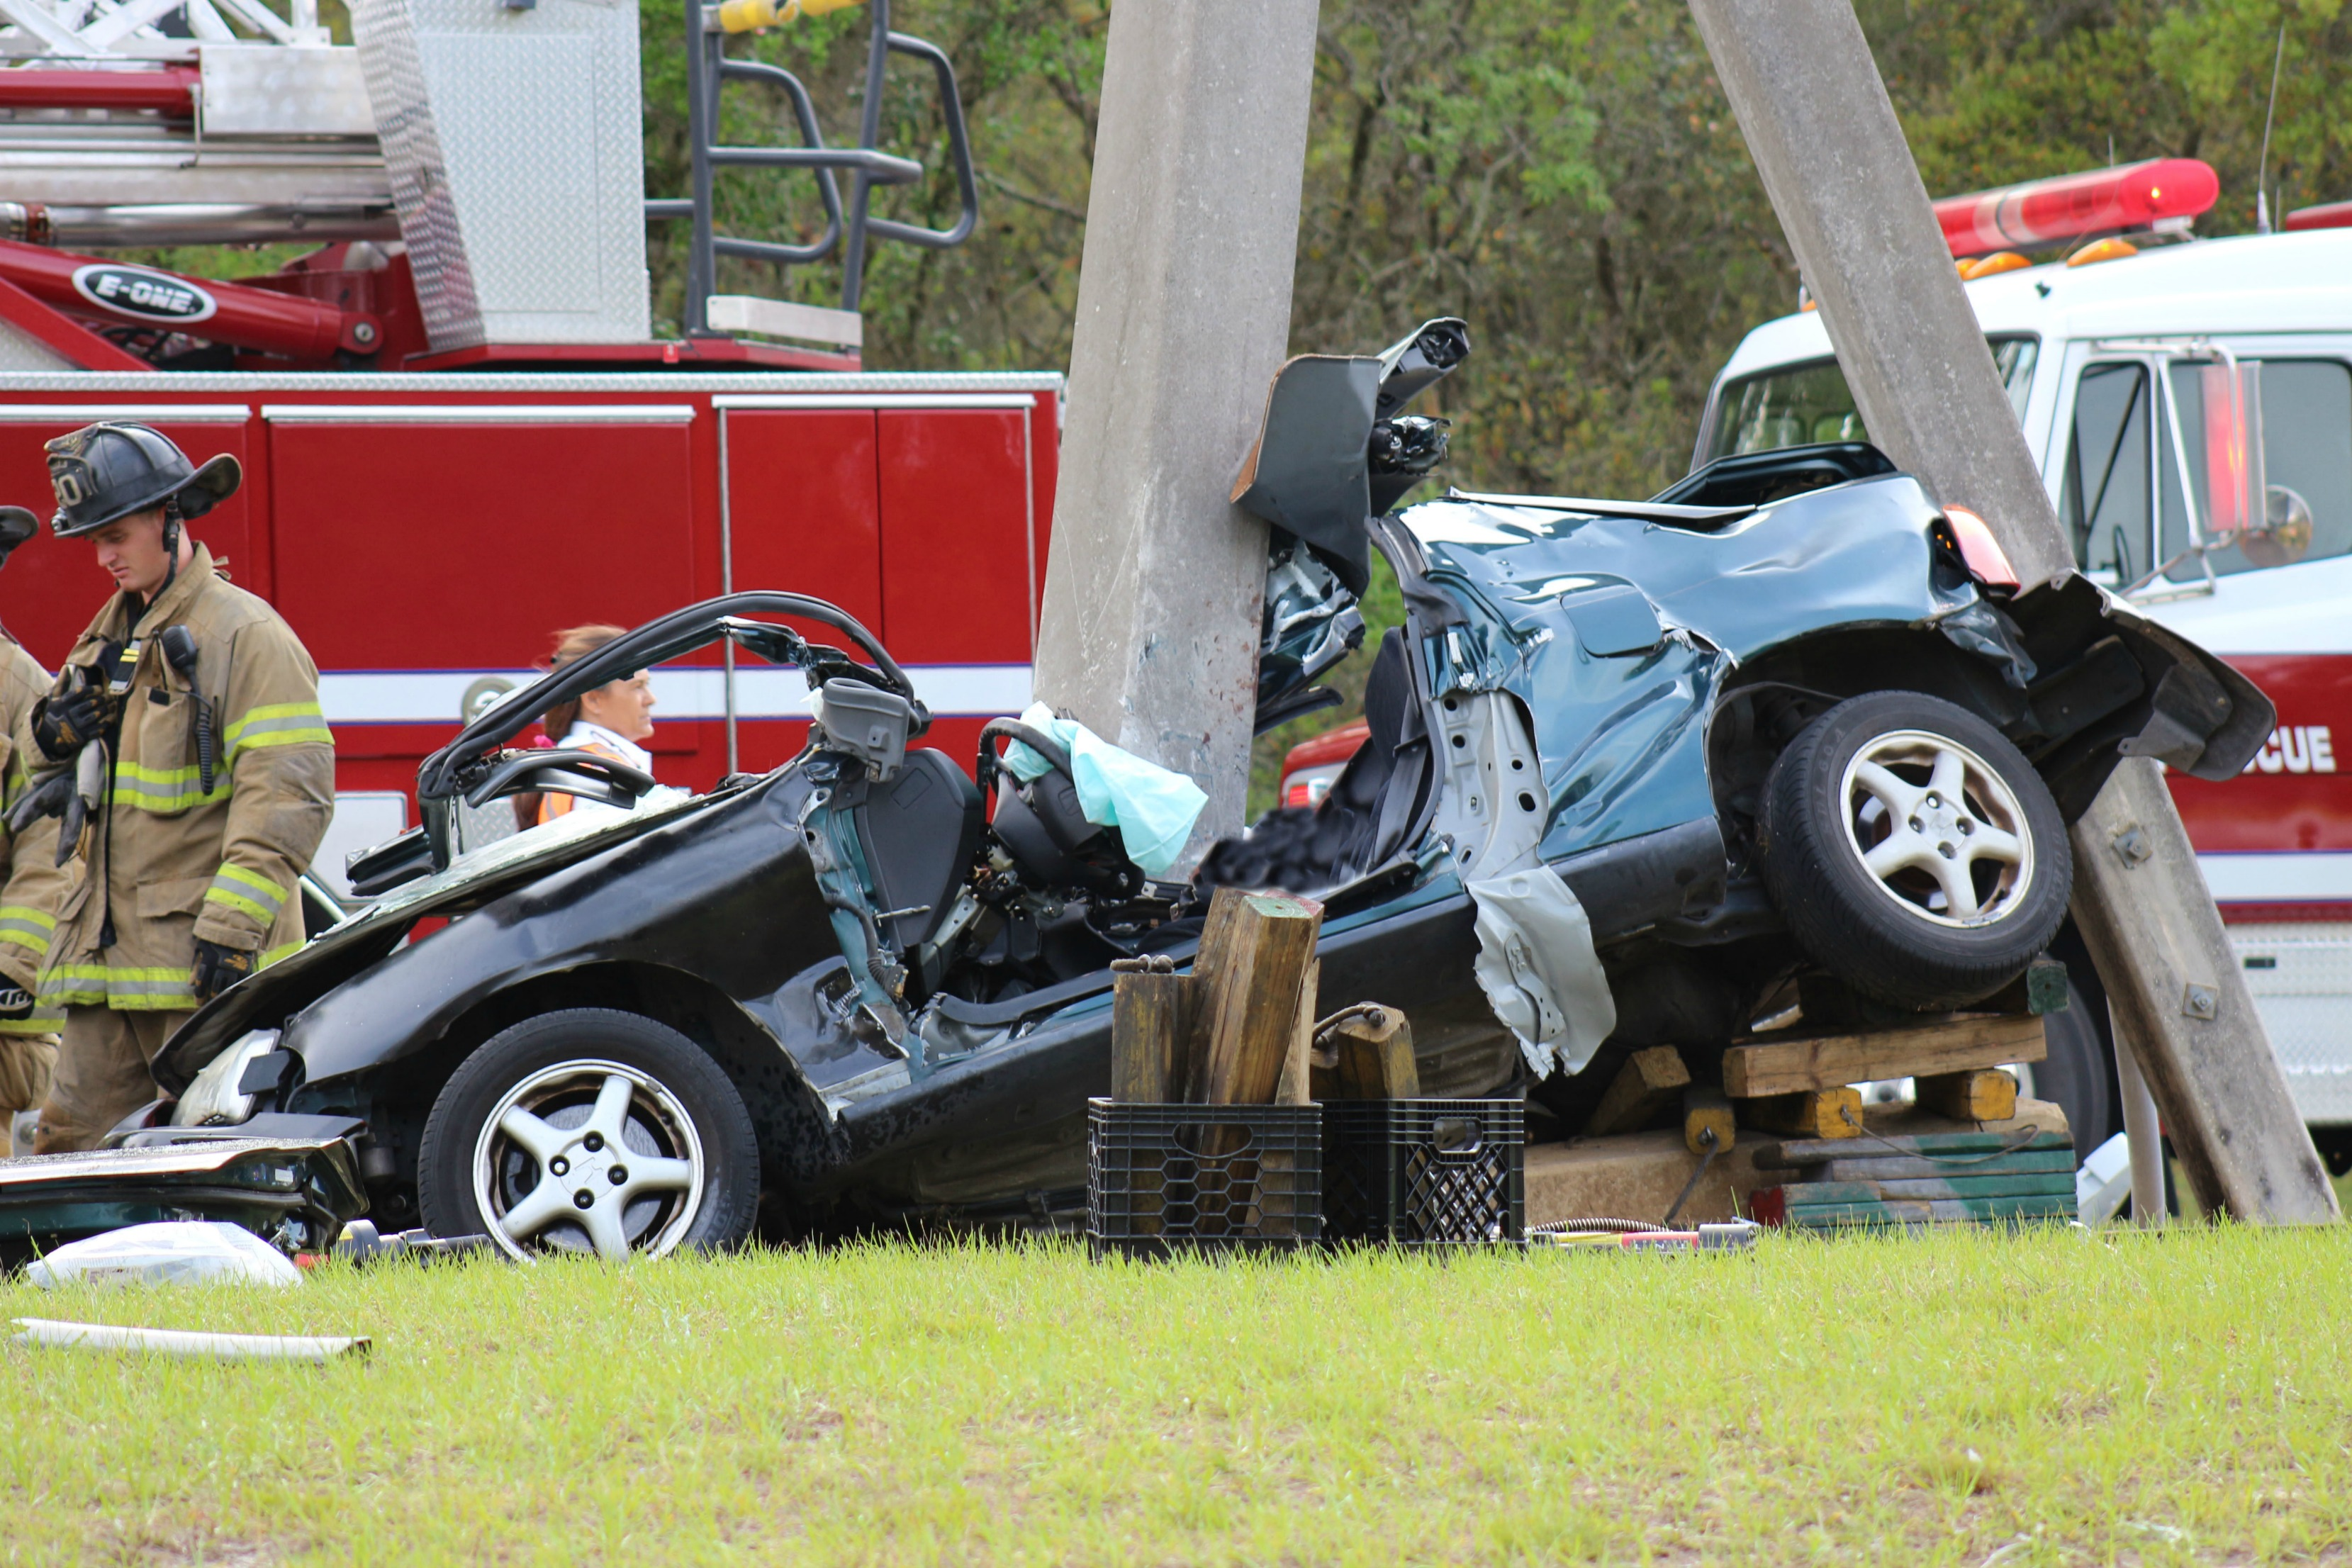 Ocala Post - Street racing could be cause of fatal crash in Marion Oaks